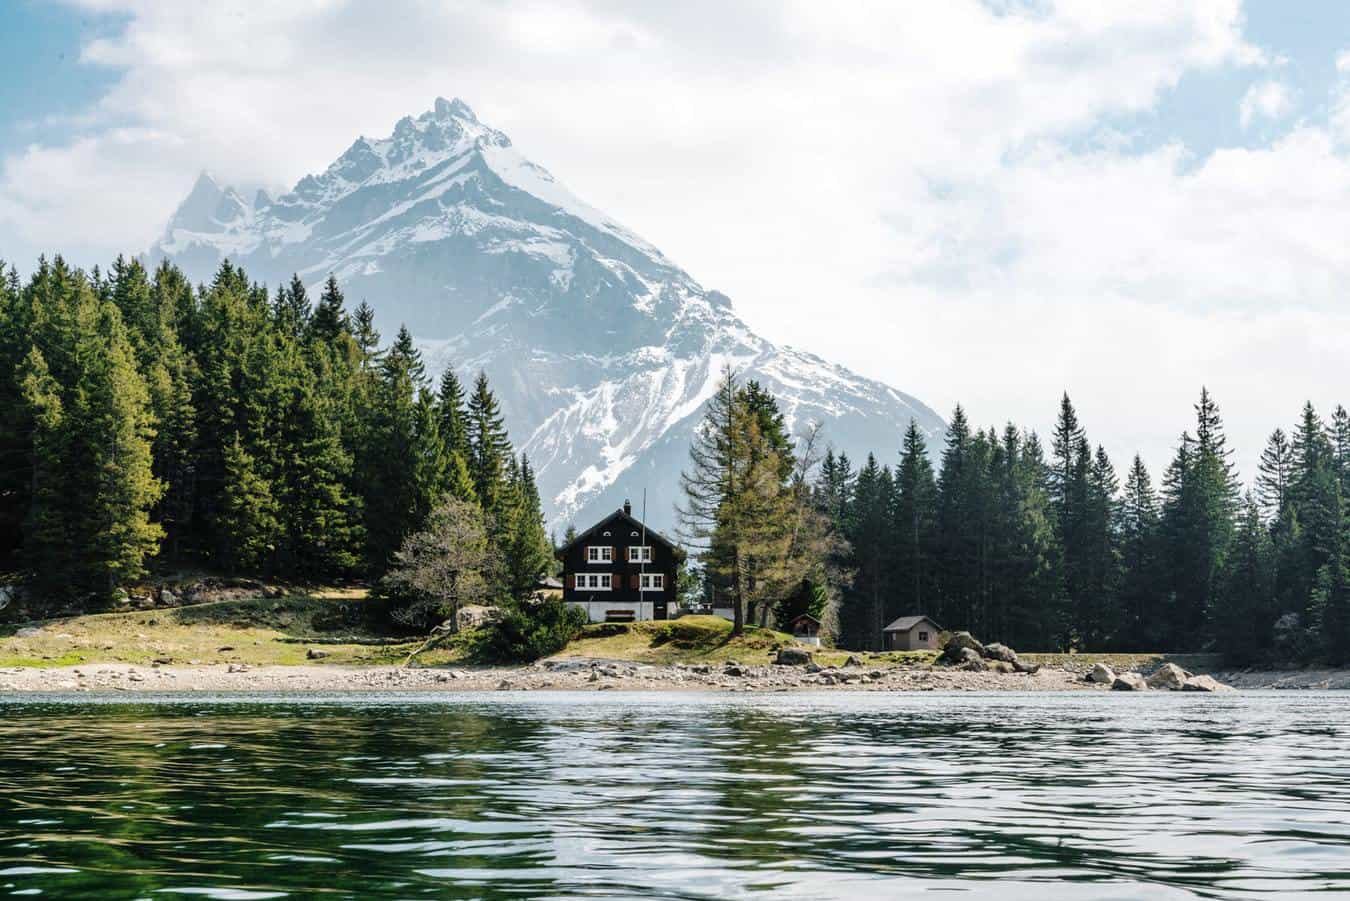 Cottage on a lake with mountain in back